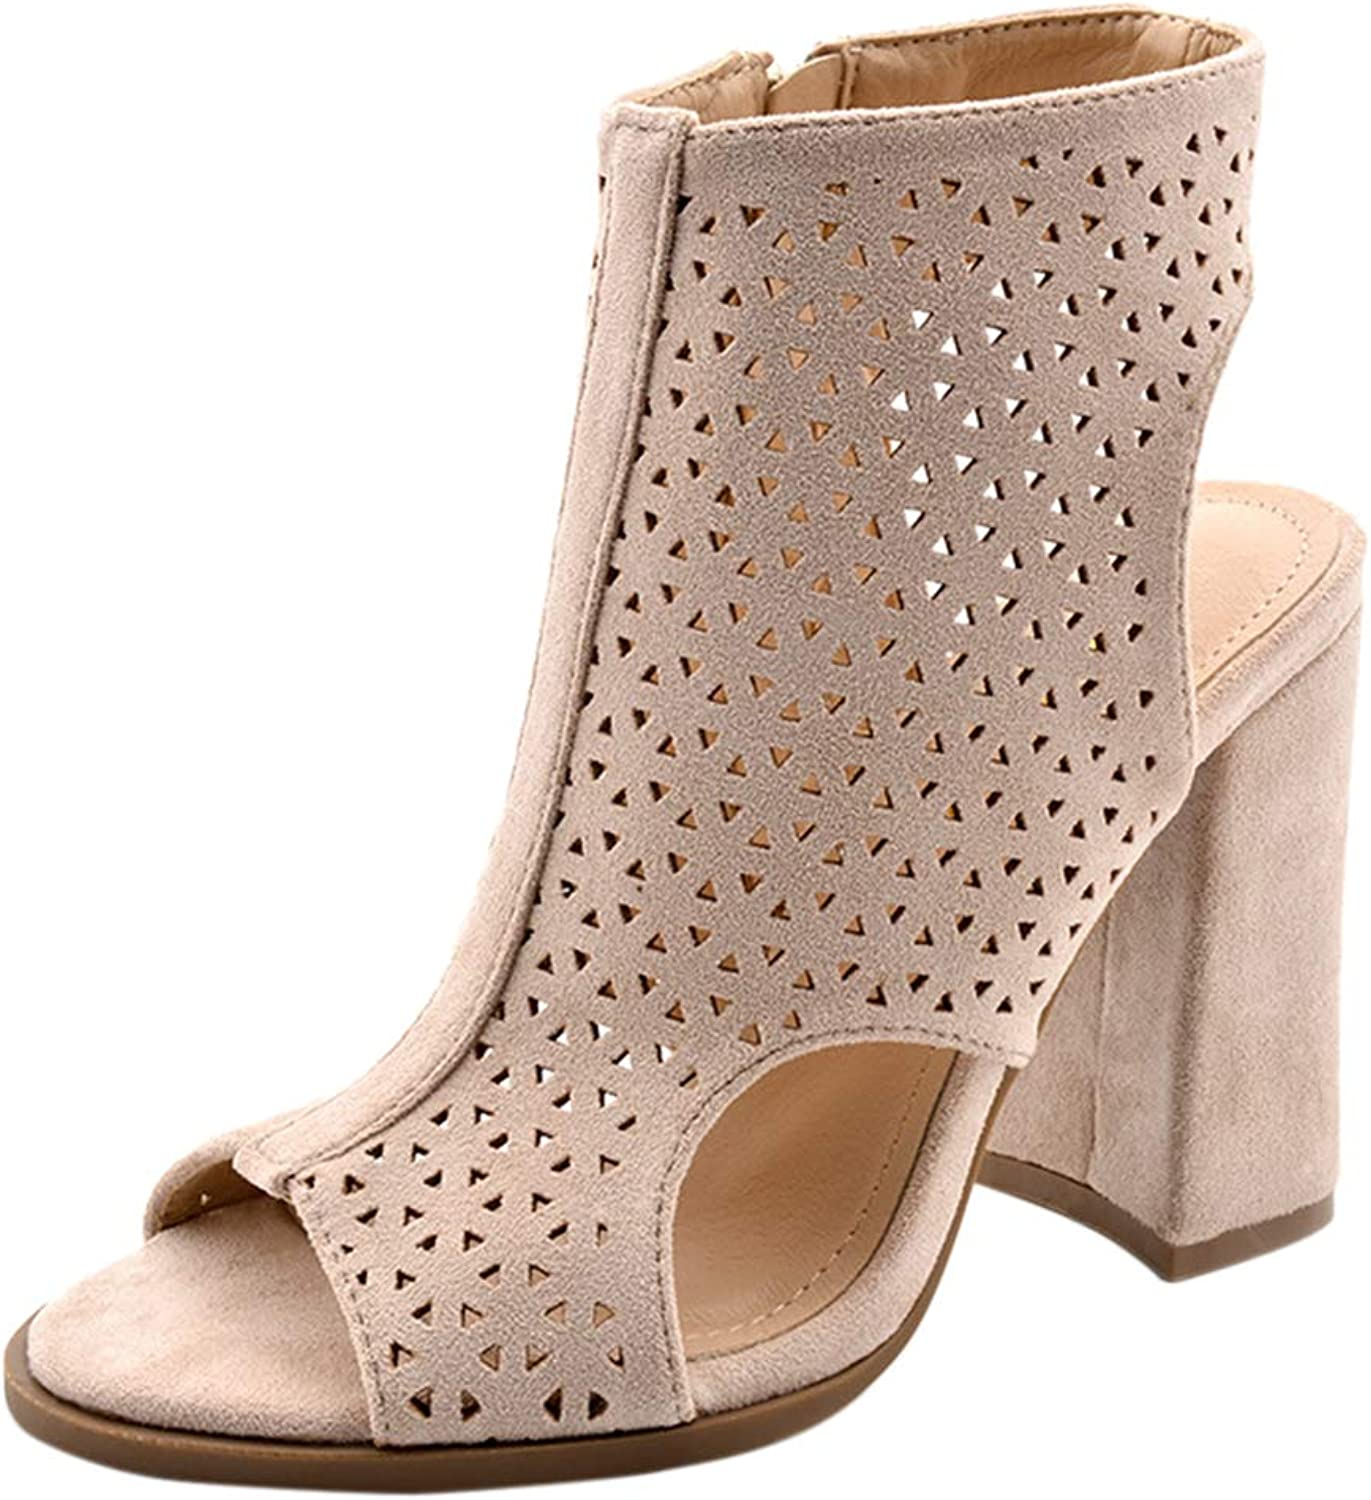 BIGTREE Womens Peep-Toe Chunky Block-Heeled Cutout Ankle-Bootie